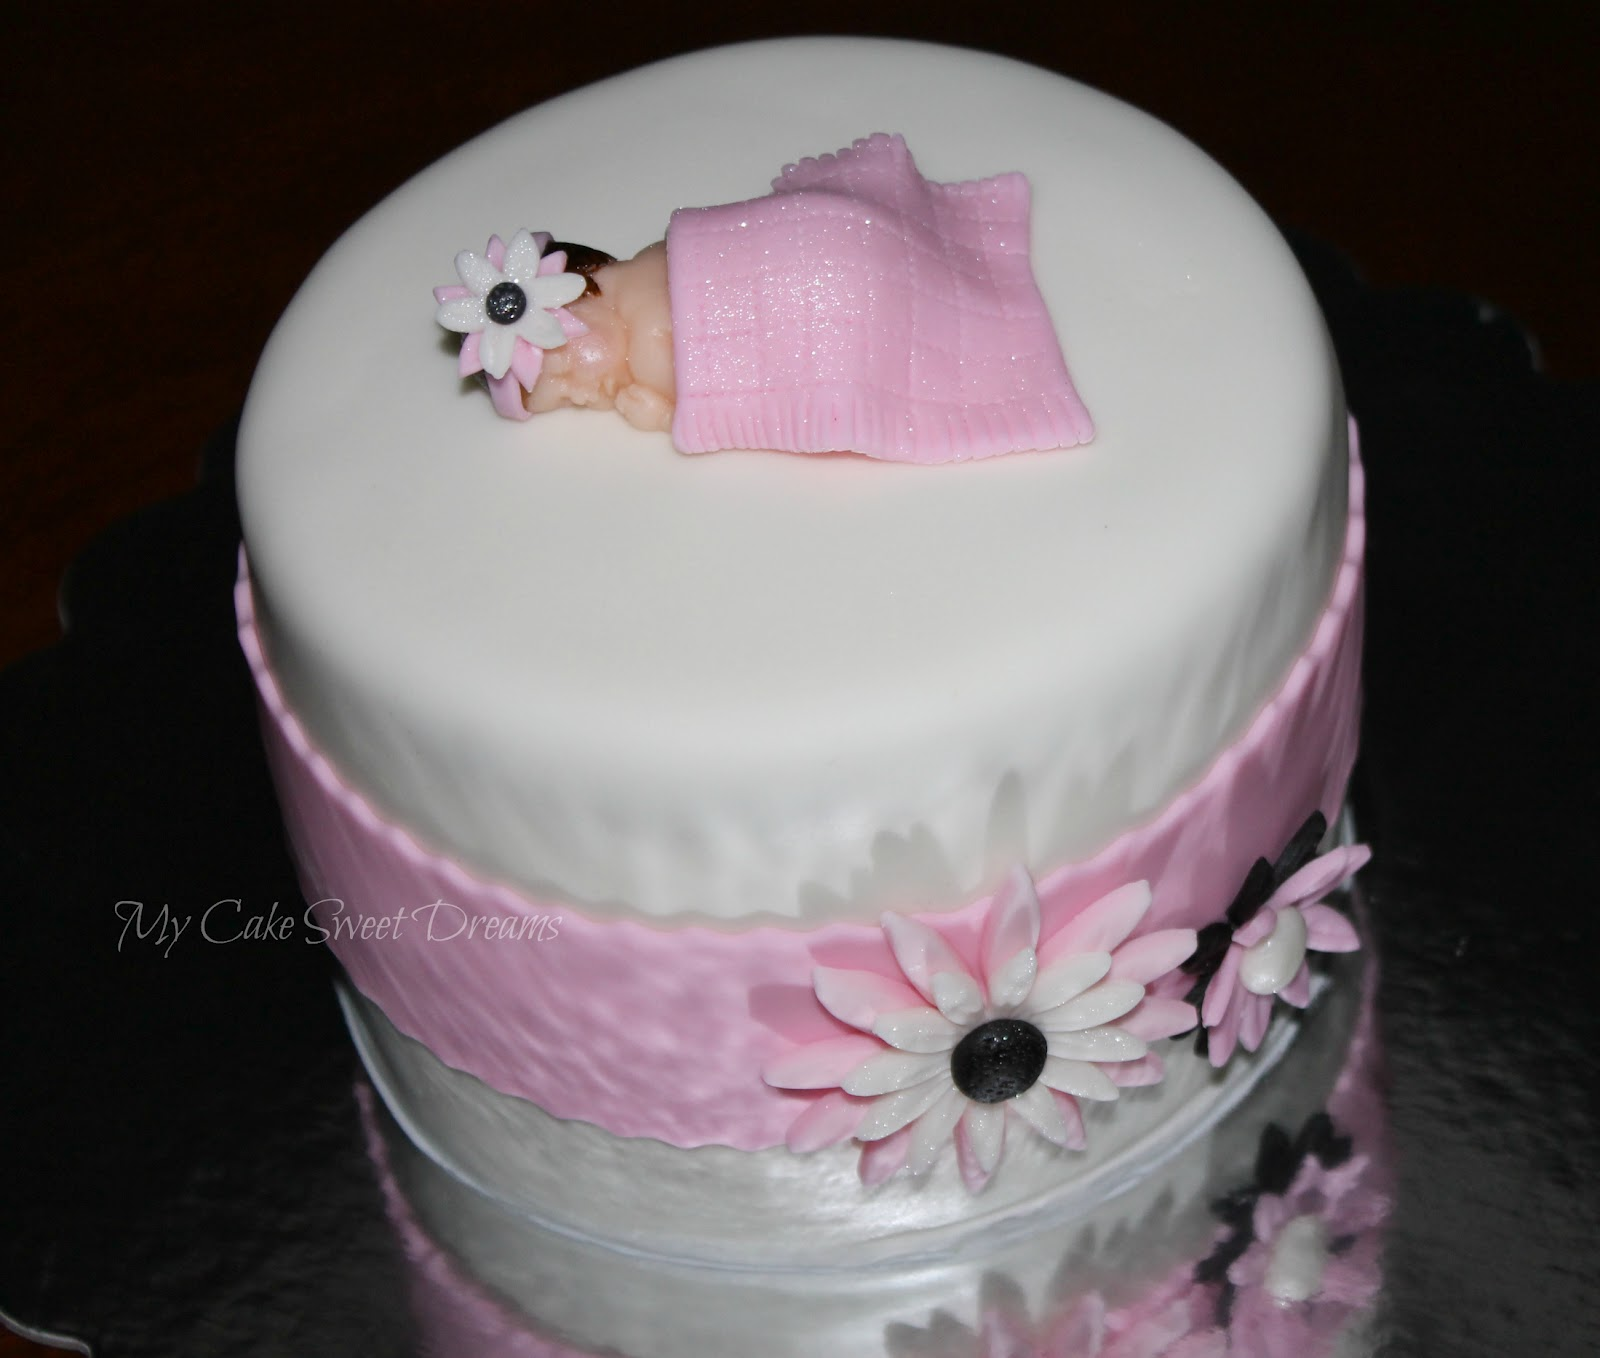 Cake Ideas For A Baby Girl : My Cake Sweet Dreams: Baby Girl Shower Cake and Cupcakes